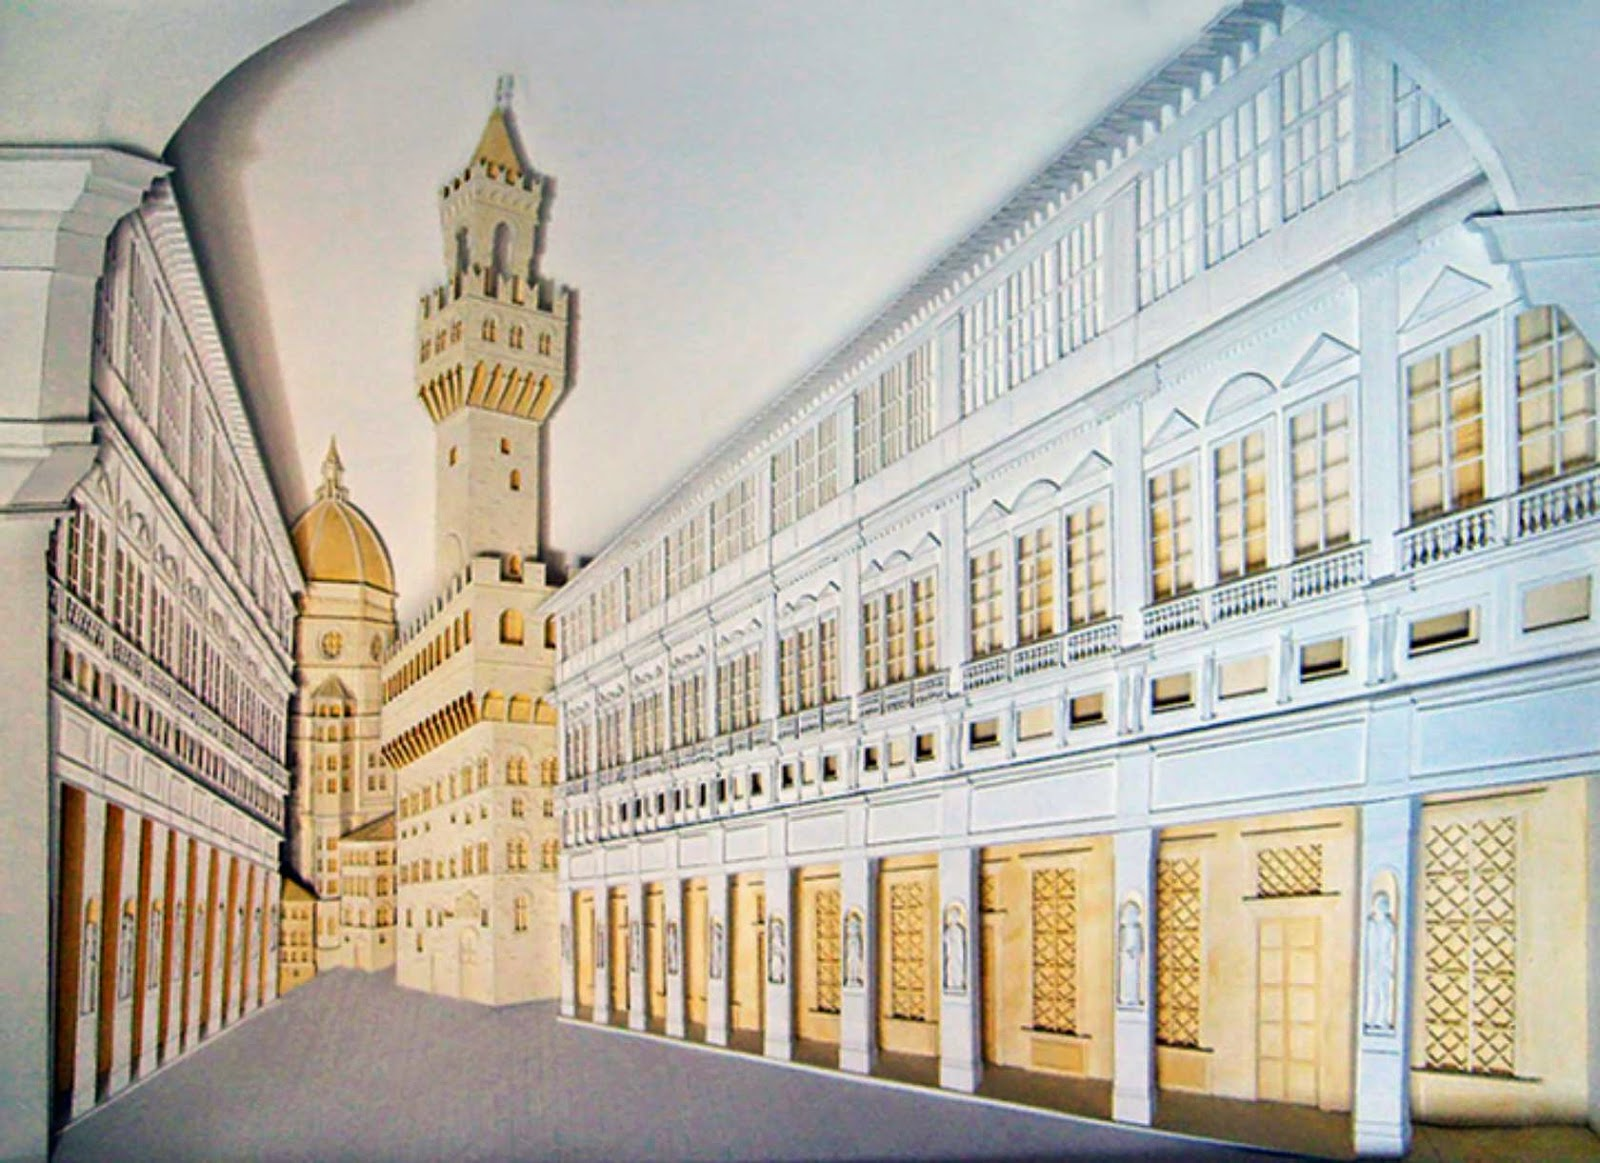 09-Christina-Lihan-3D-Architectural-Paper-Sculptures-www-designstack-co